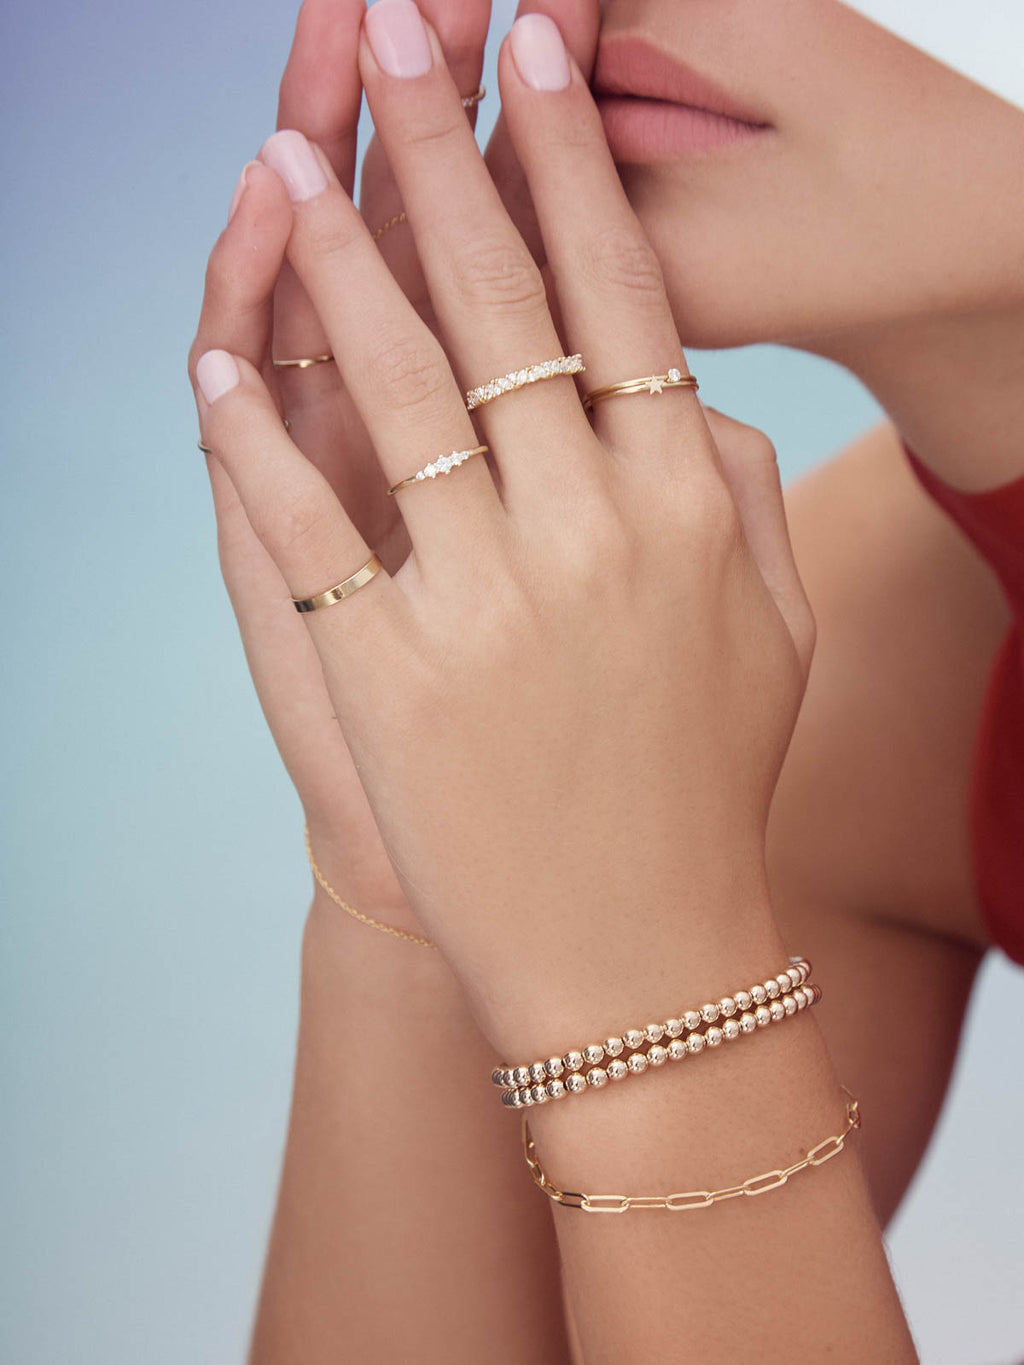 Paperclip Bracelet - Gold Filled